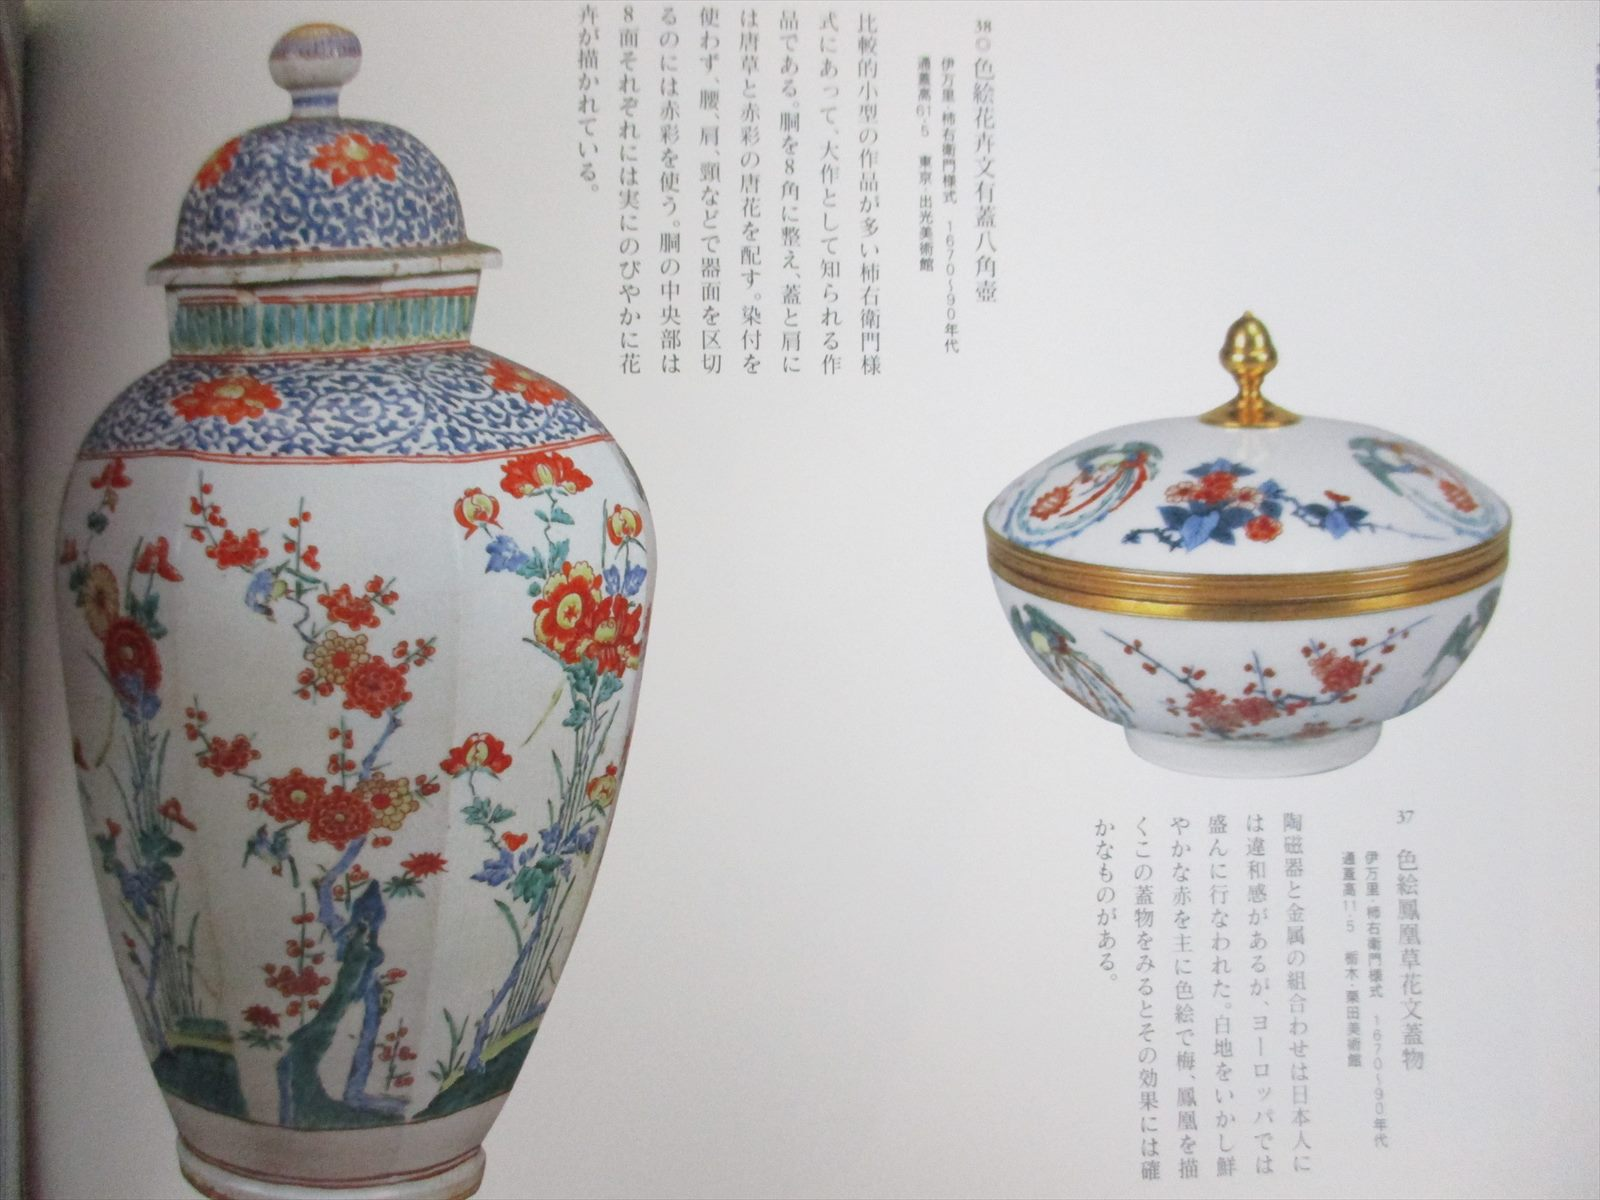 Japan IMARI & KYOTO WEAR CERAMICS Art Book Antique Arita Koimari Kinrande Kyoyaki 2005